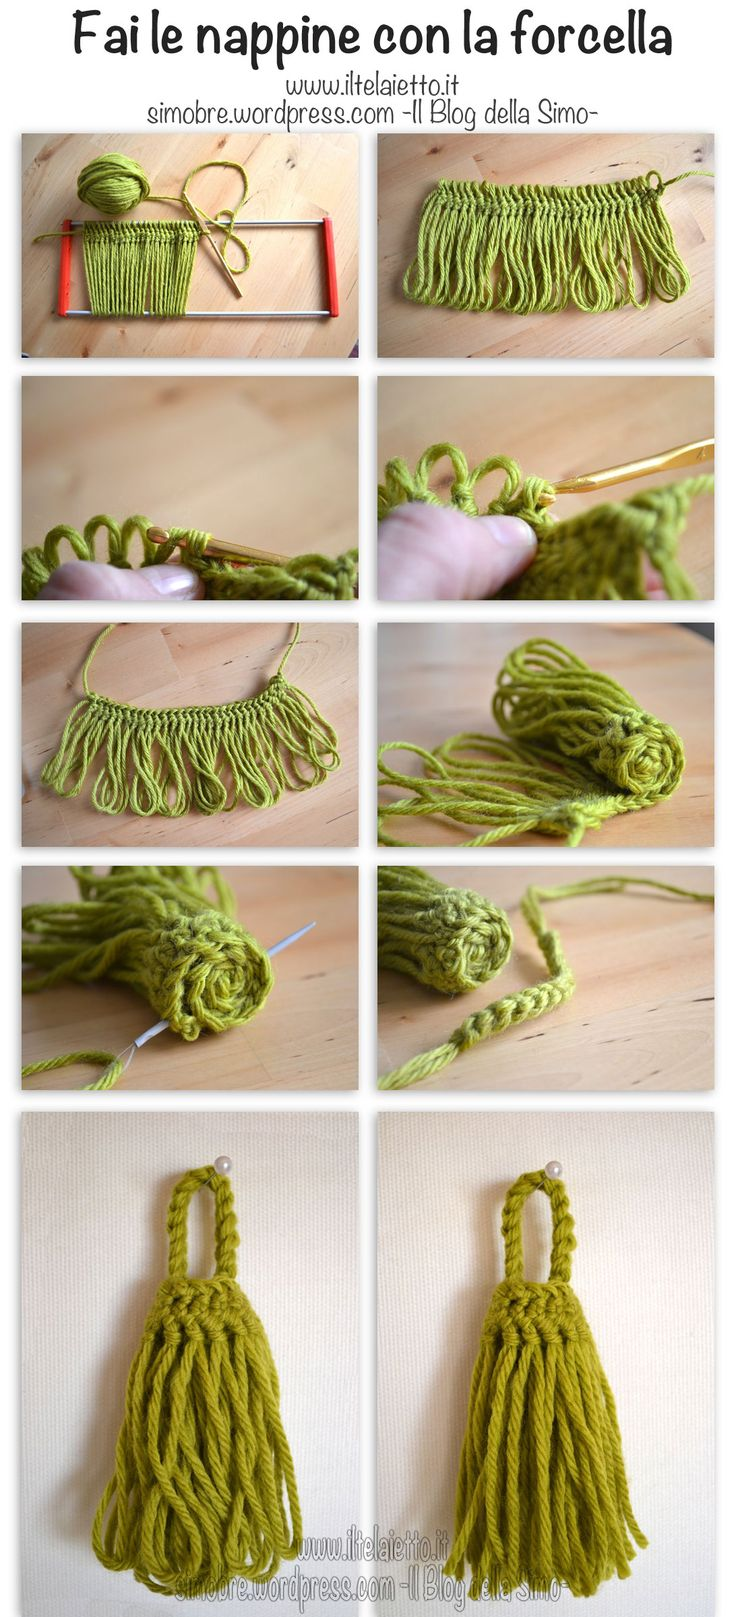 Tutorial - tassel with hairpin lace (only photo)